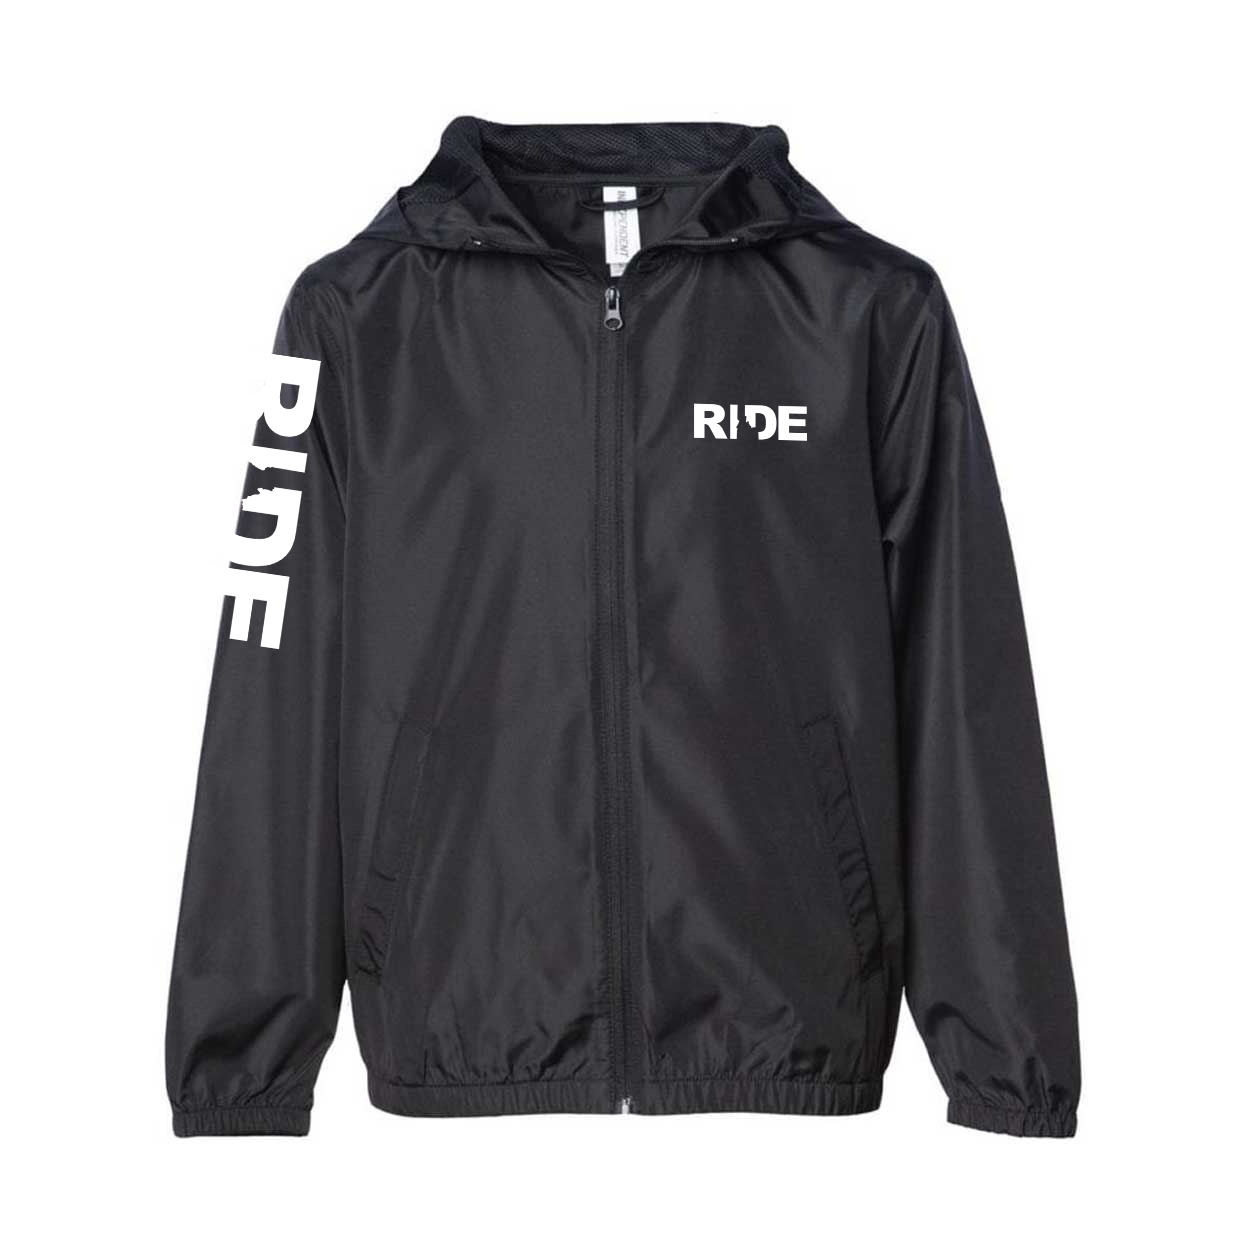 Ride Idaho Classic Youth Lightweight Windbreaker Black (White Logo)